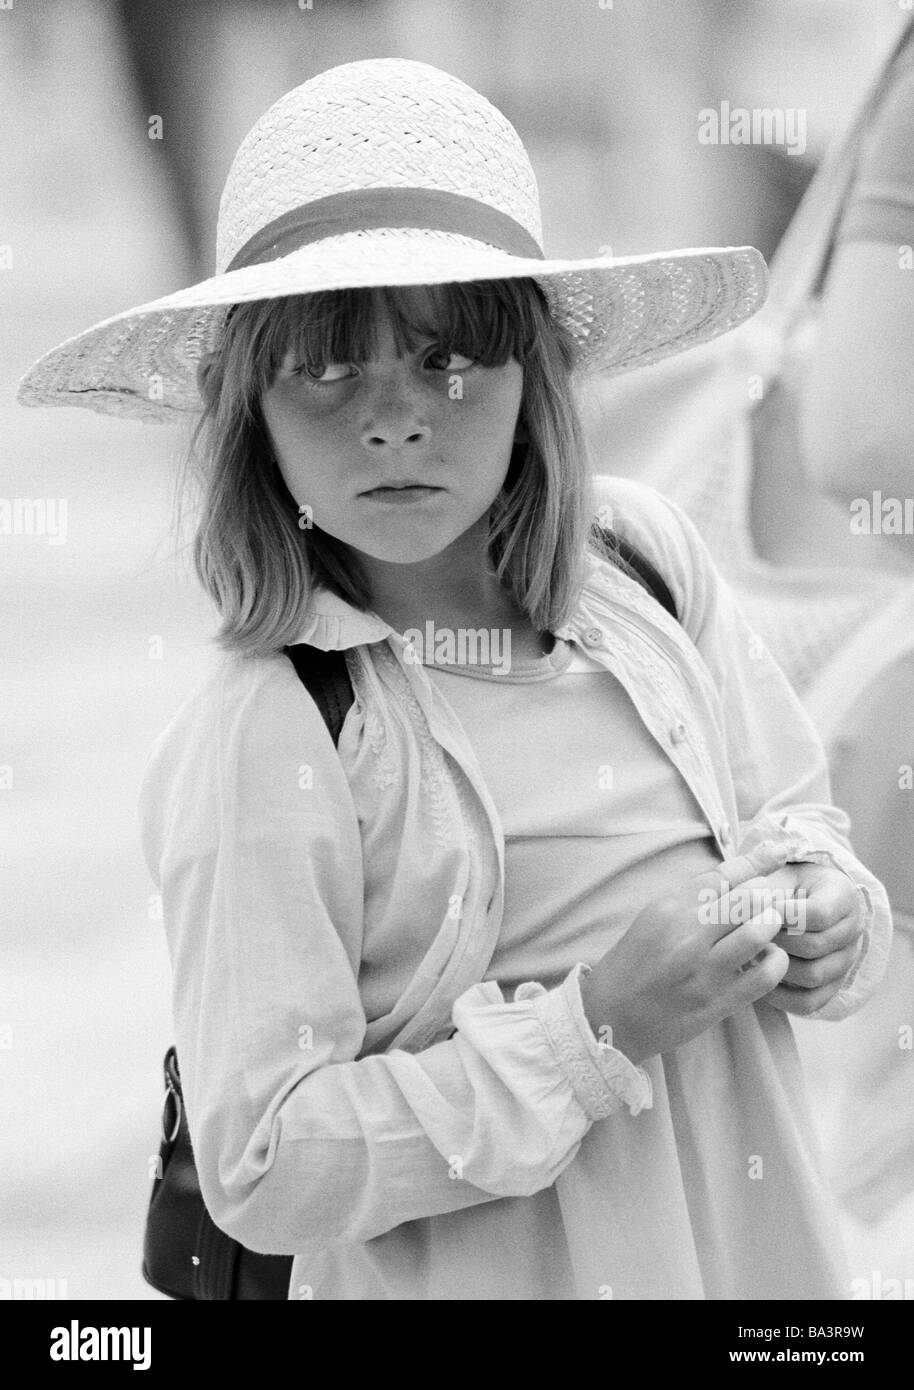 Eighties, black and white photo, people, children, little girl wearing a strawhat, portrait, aged 7 to 10 years, - Stock Image